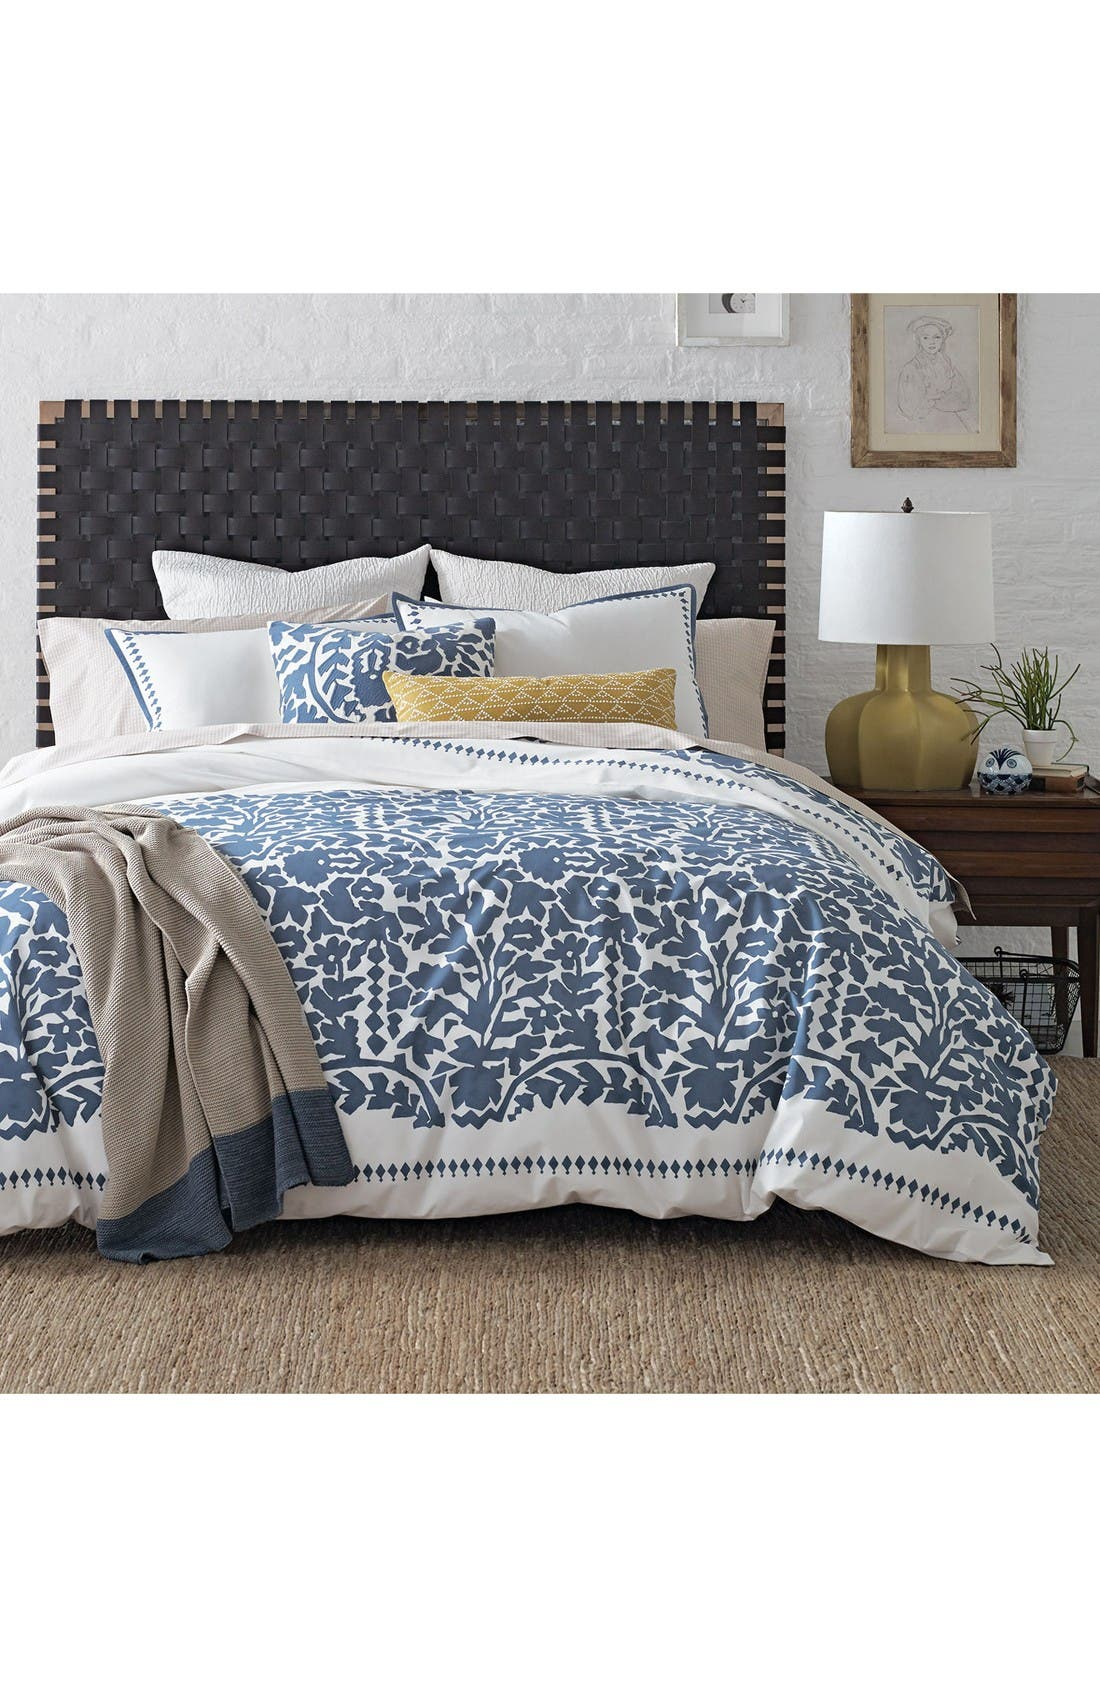 dwellstudio bedding sets  bedding collections  nordstrom  nordstrom -